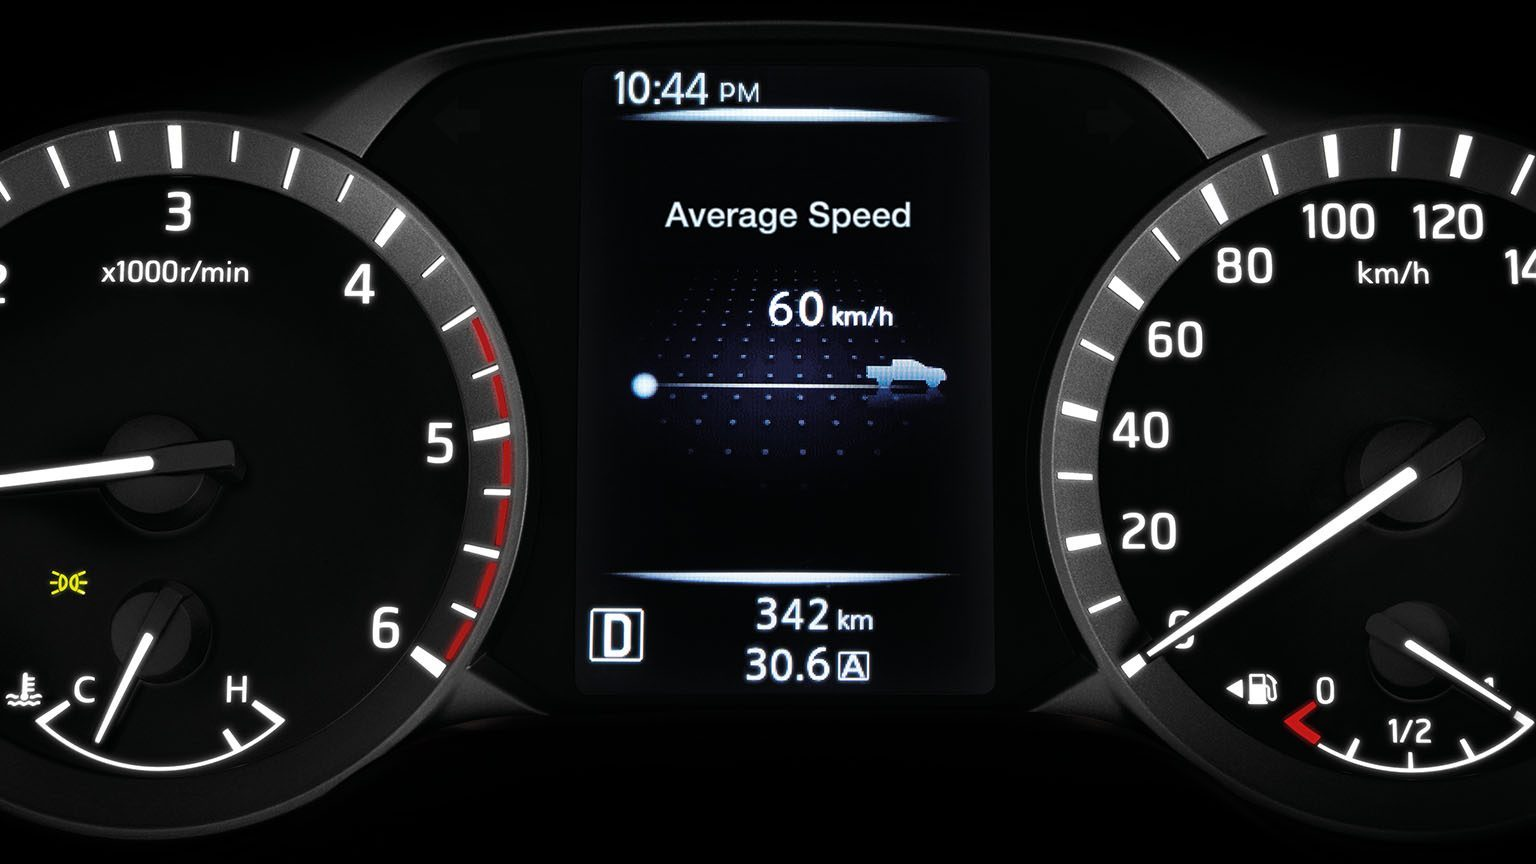 Average Speed Display